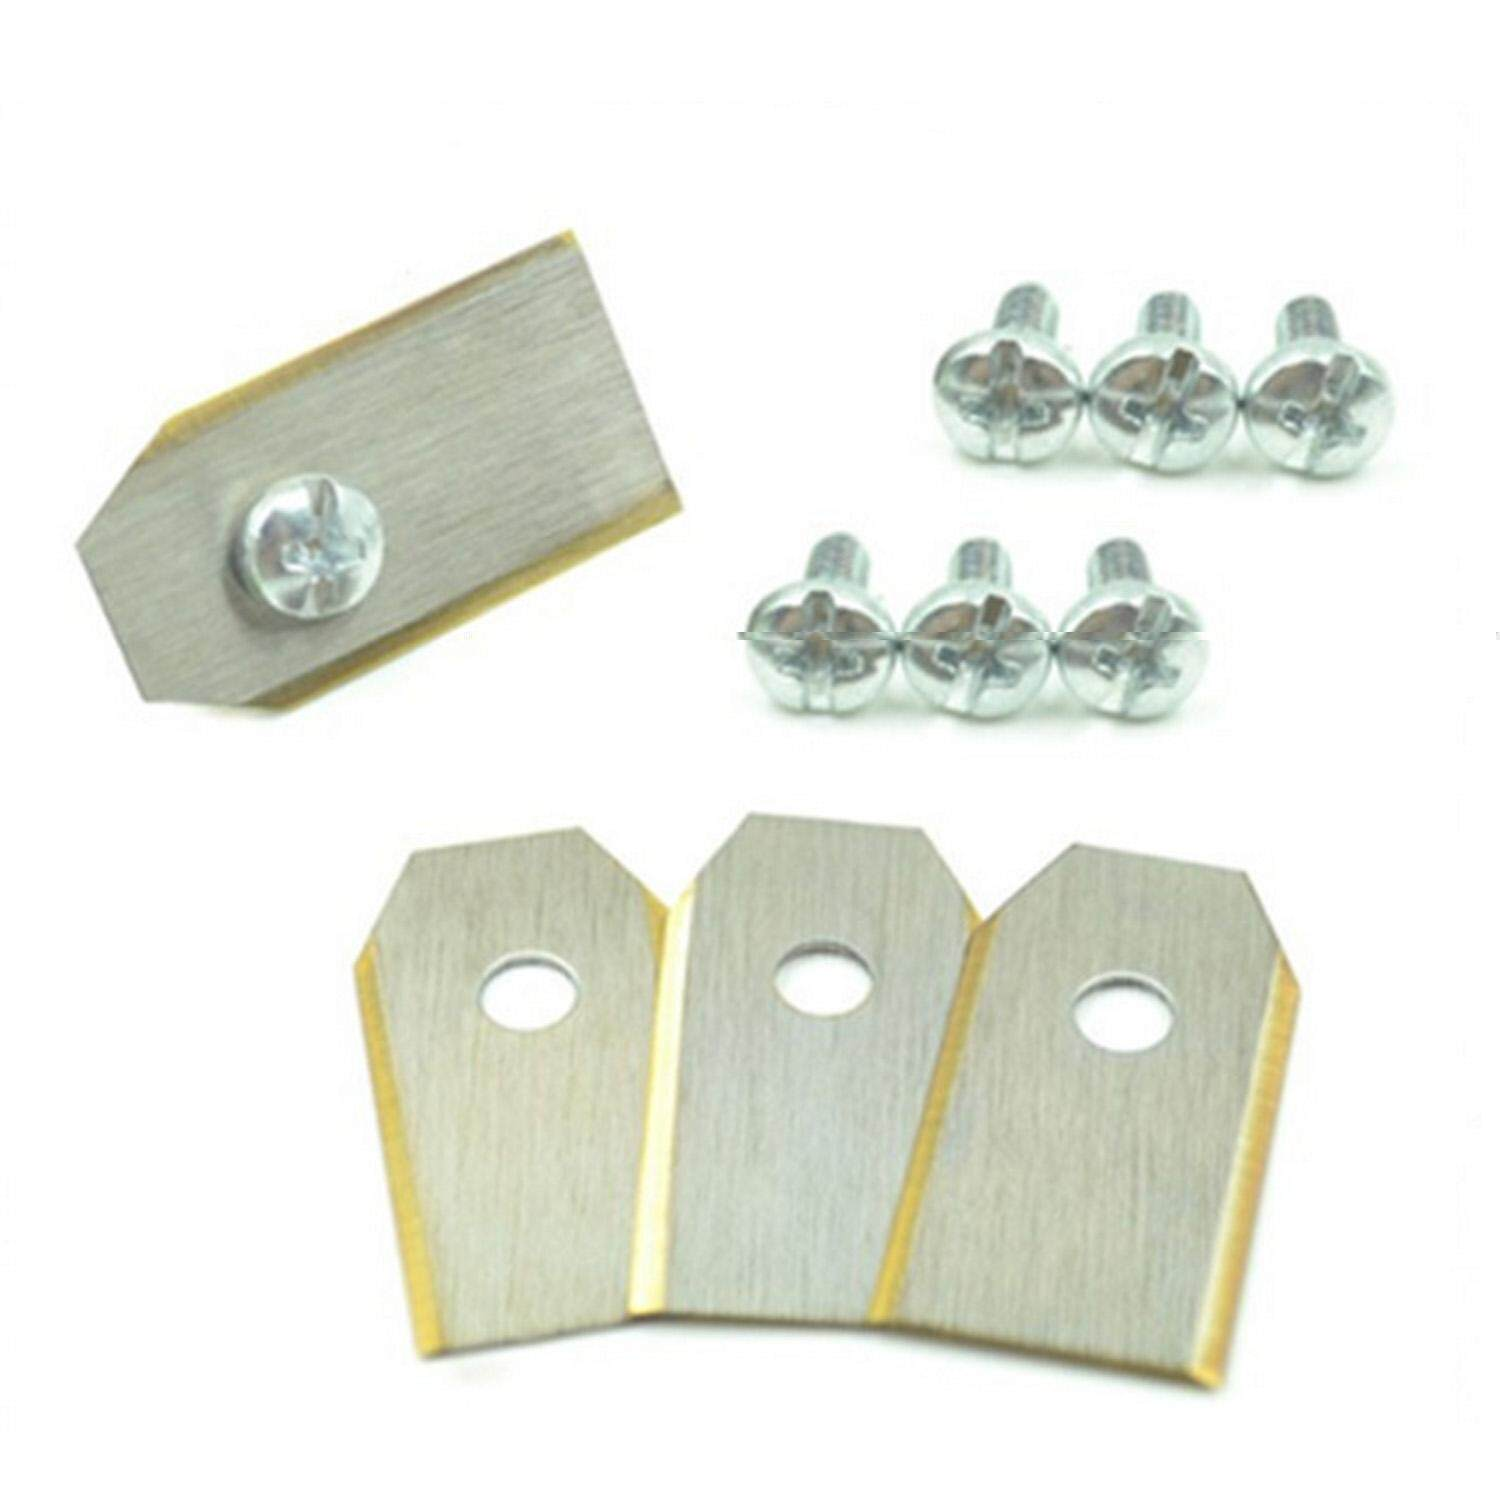 30pcs Anti Rust Stainless Steel Garden Mower Replacement Blade with Screws for Husqvarna Automower Silver